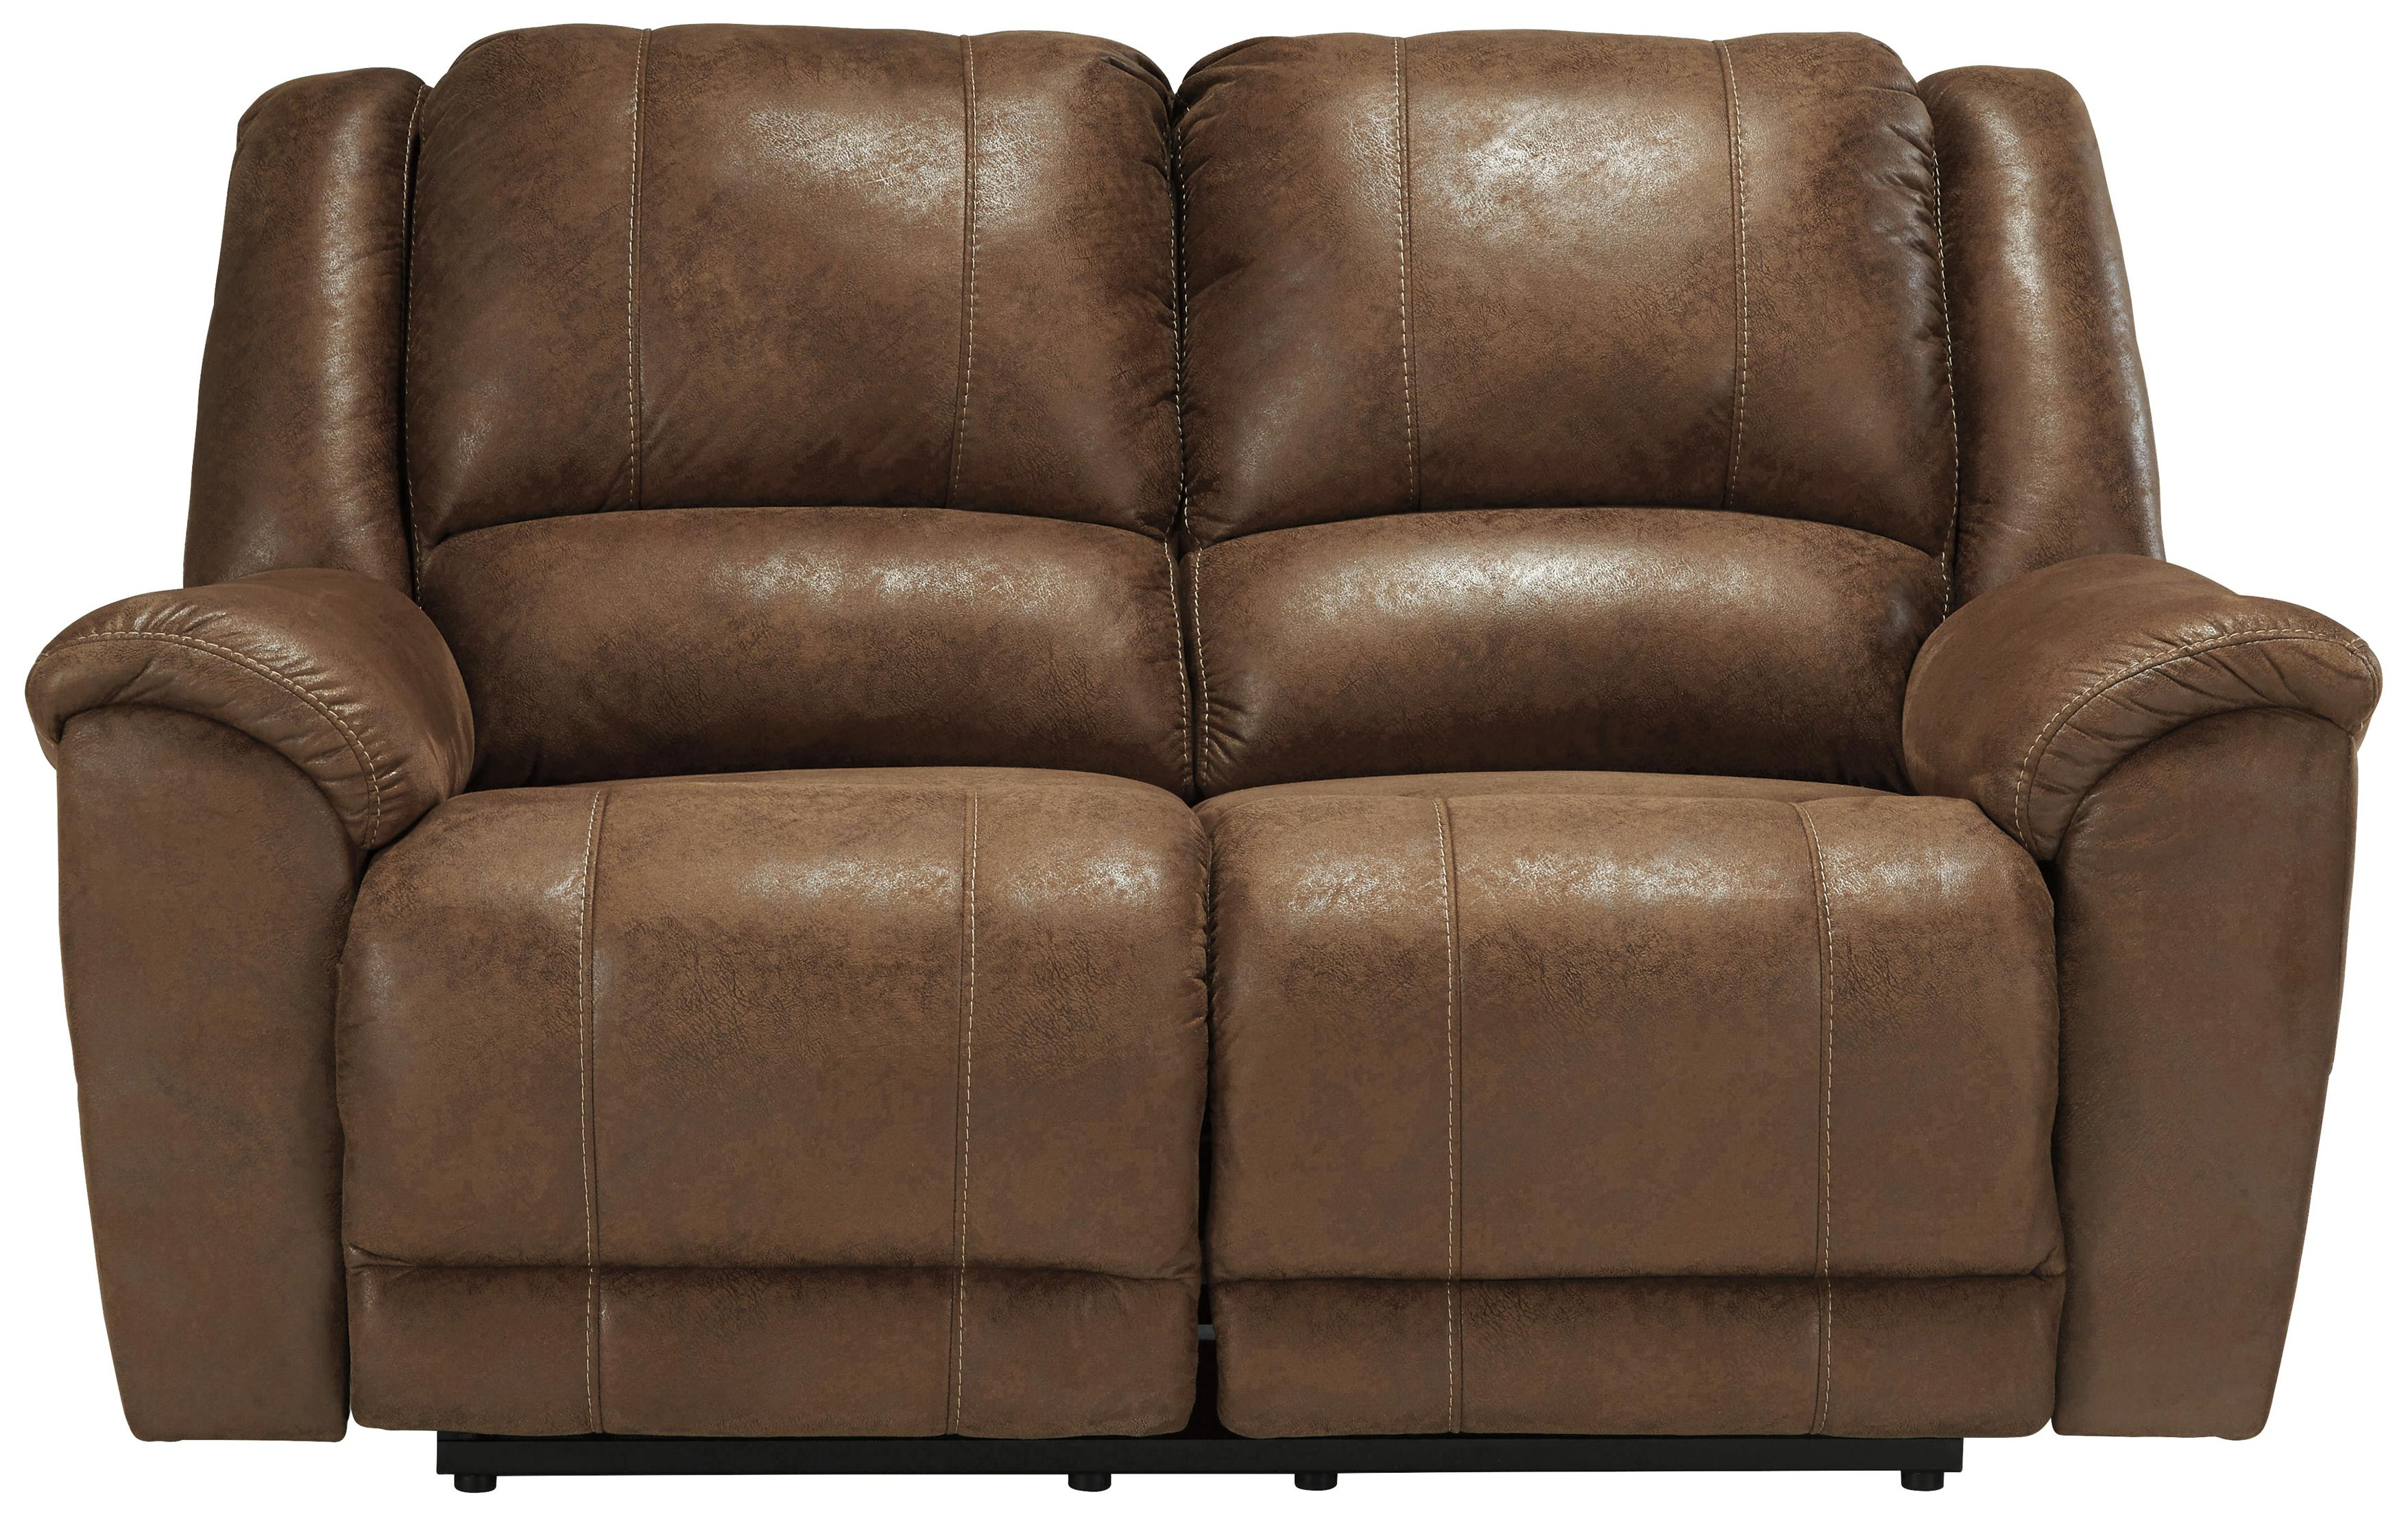 Benchcraft Niarobi Reclining Loveseat - Item Number: 4060186